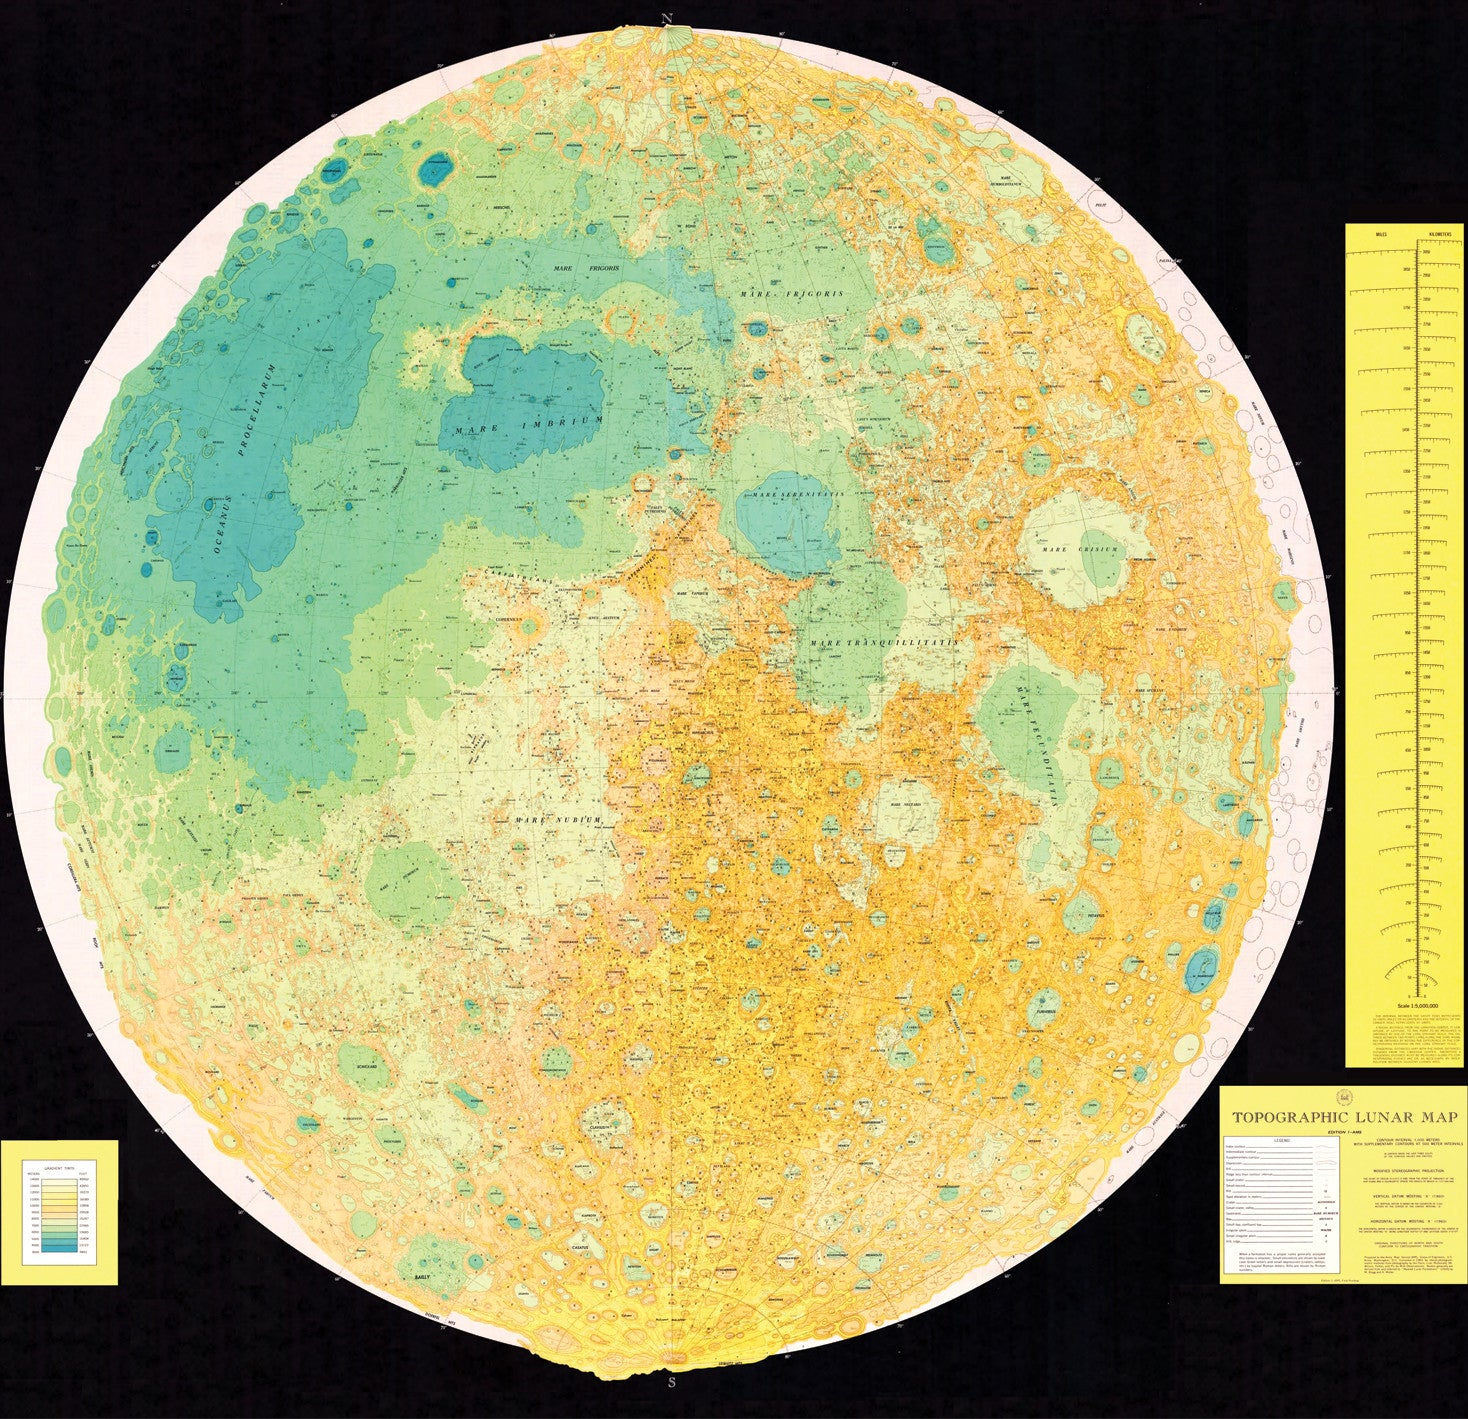 Topographic Lunar Map 1963